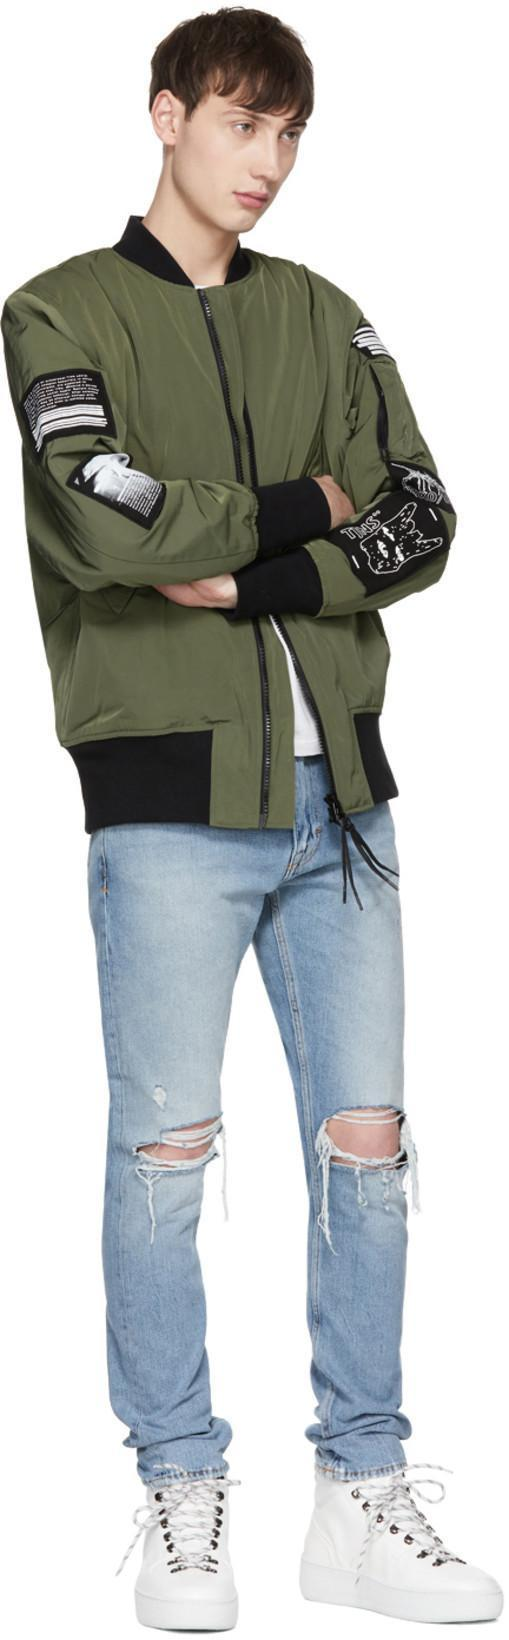 2642d83ce Green Sob Patches Bomber Jacket